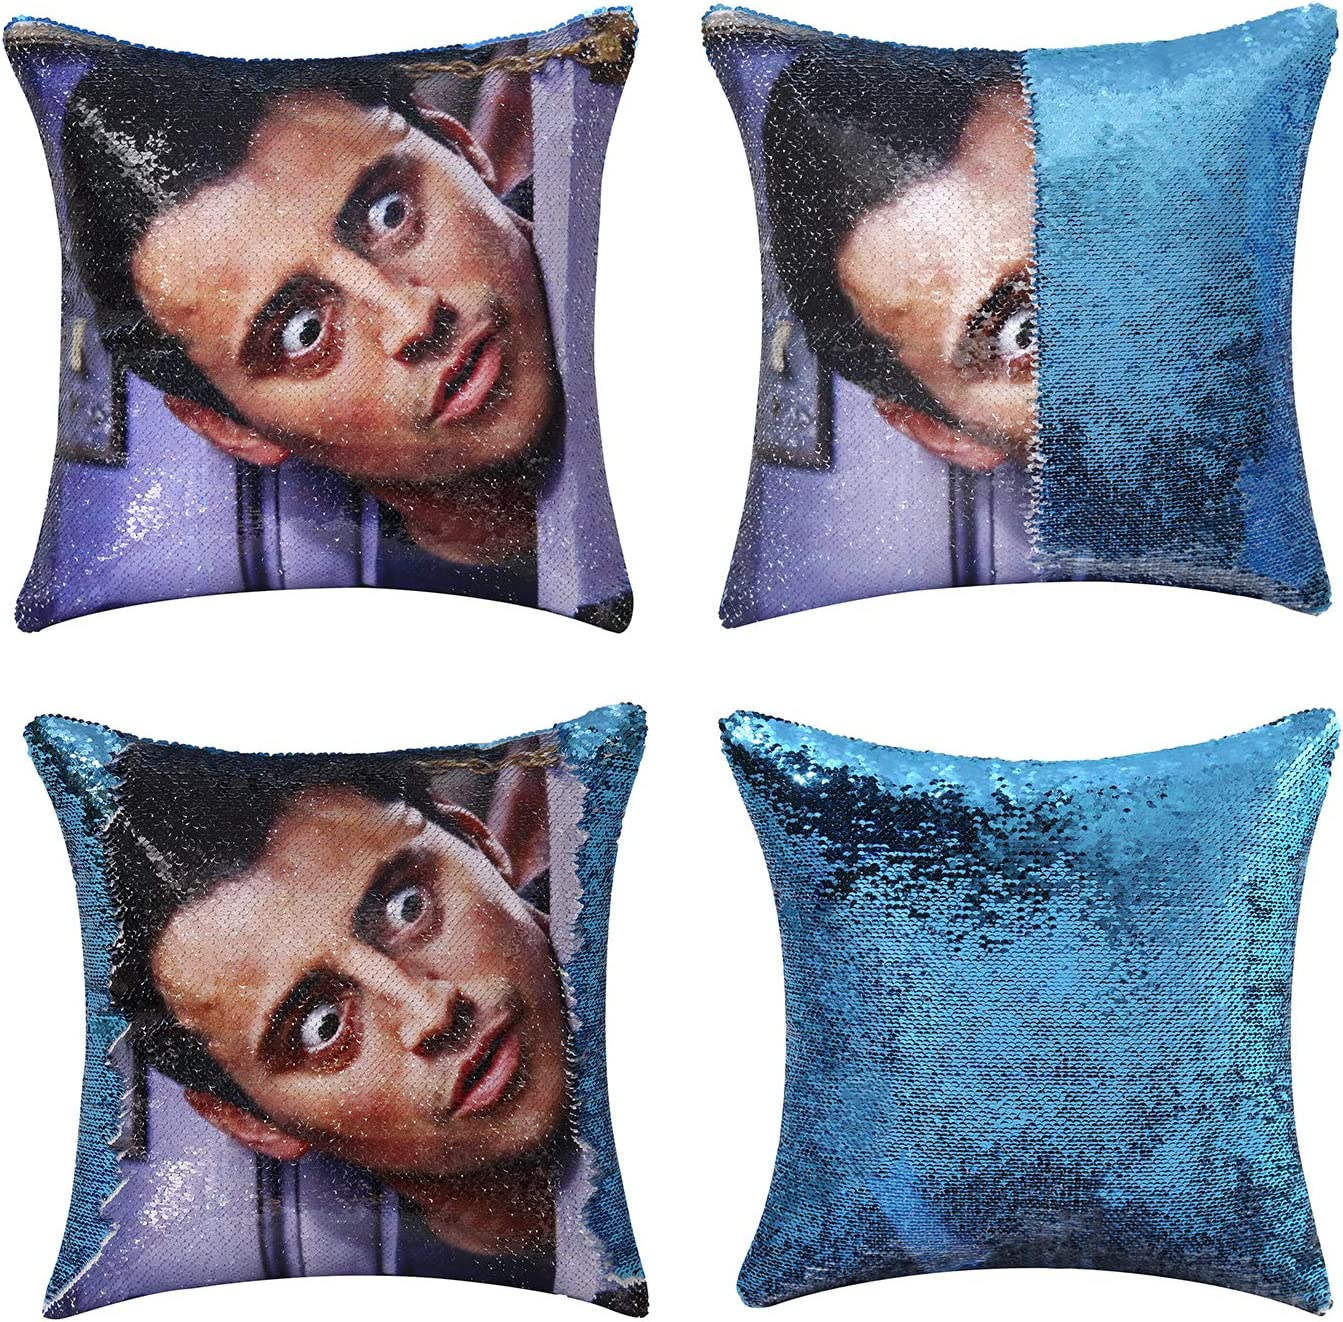 Jasen Friends Joey Tribbiani Sequin Pillow Cover Magic Two Color Changing Pillowcase Mermaid Pillow Custom Pillow Cover Gift for Her Him(Blue)